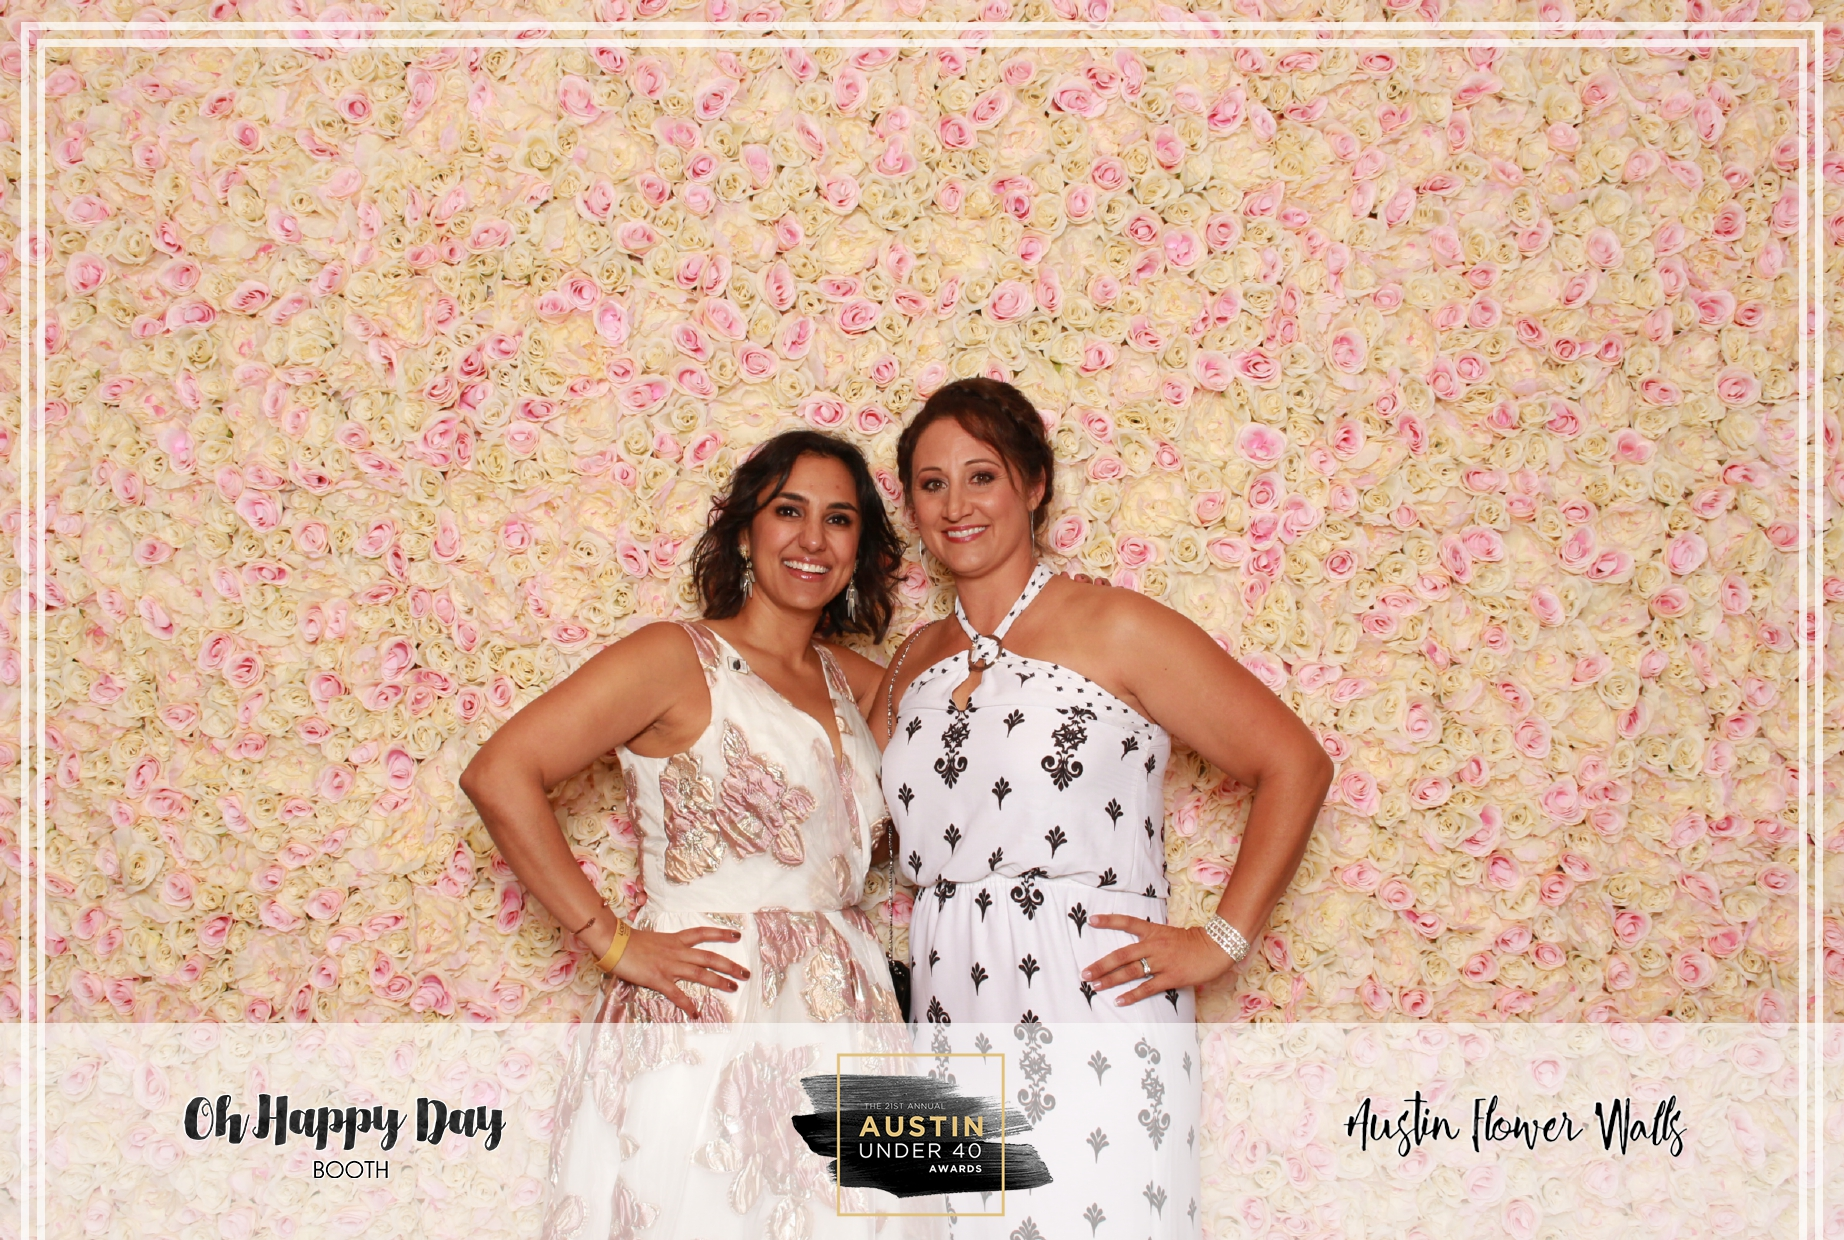 Oh Happy Day Booth - Austin Under 40-115.jpg